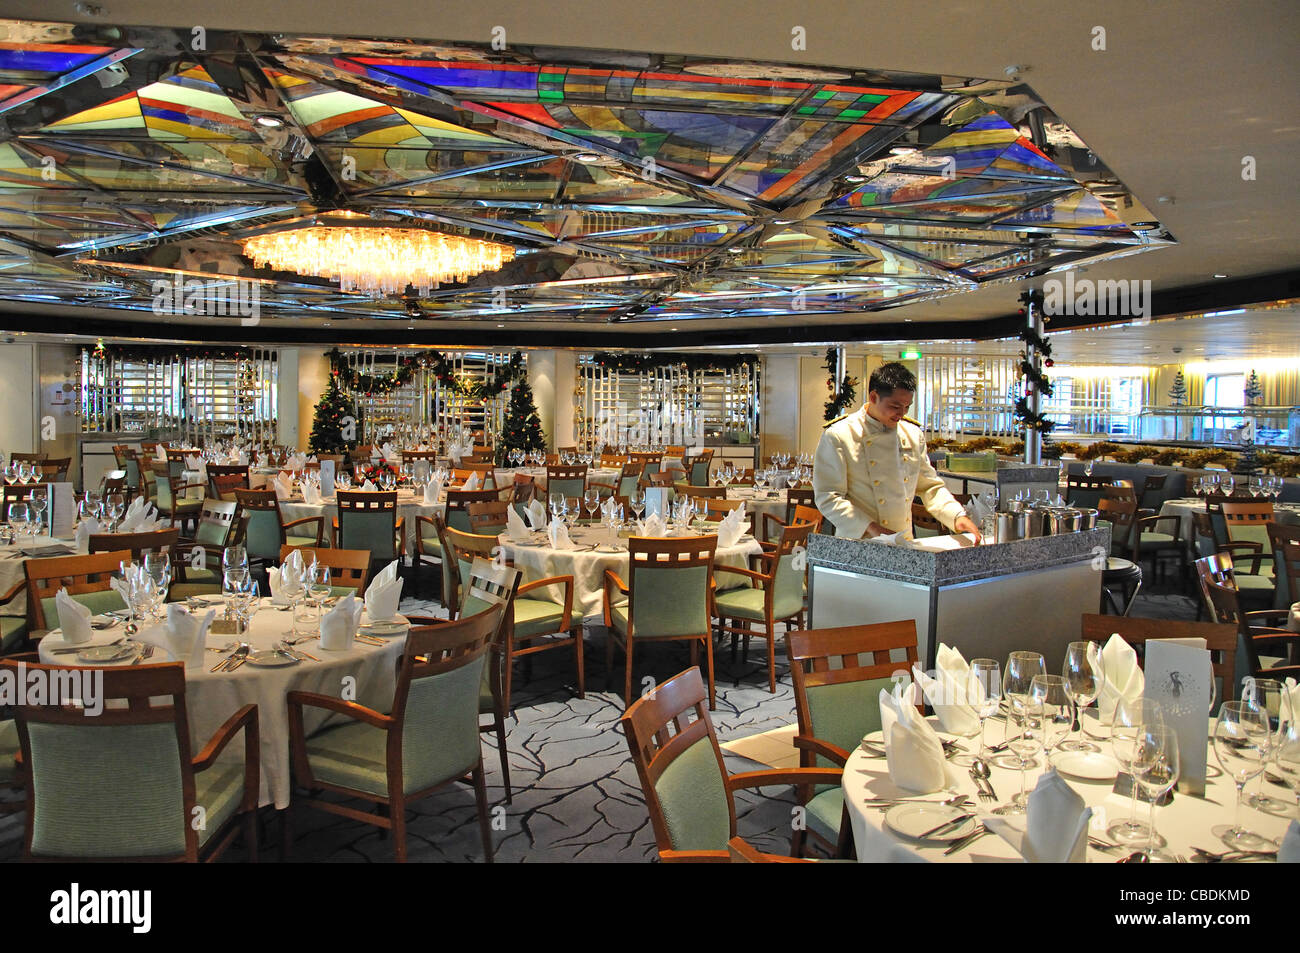 Ballindalloch restaurant on Fred Olsen M.S.Balmoral cruise ship in North Sea, Northern Europe Stock Photo